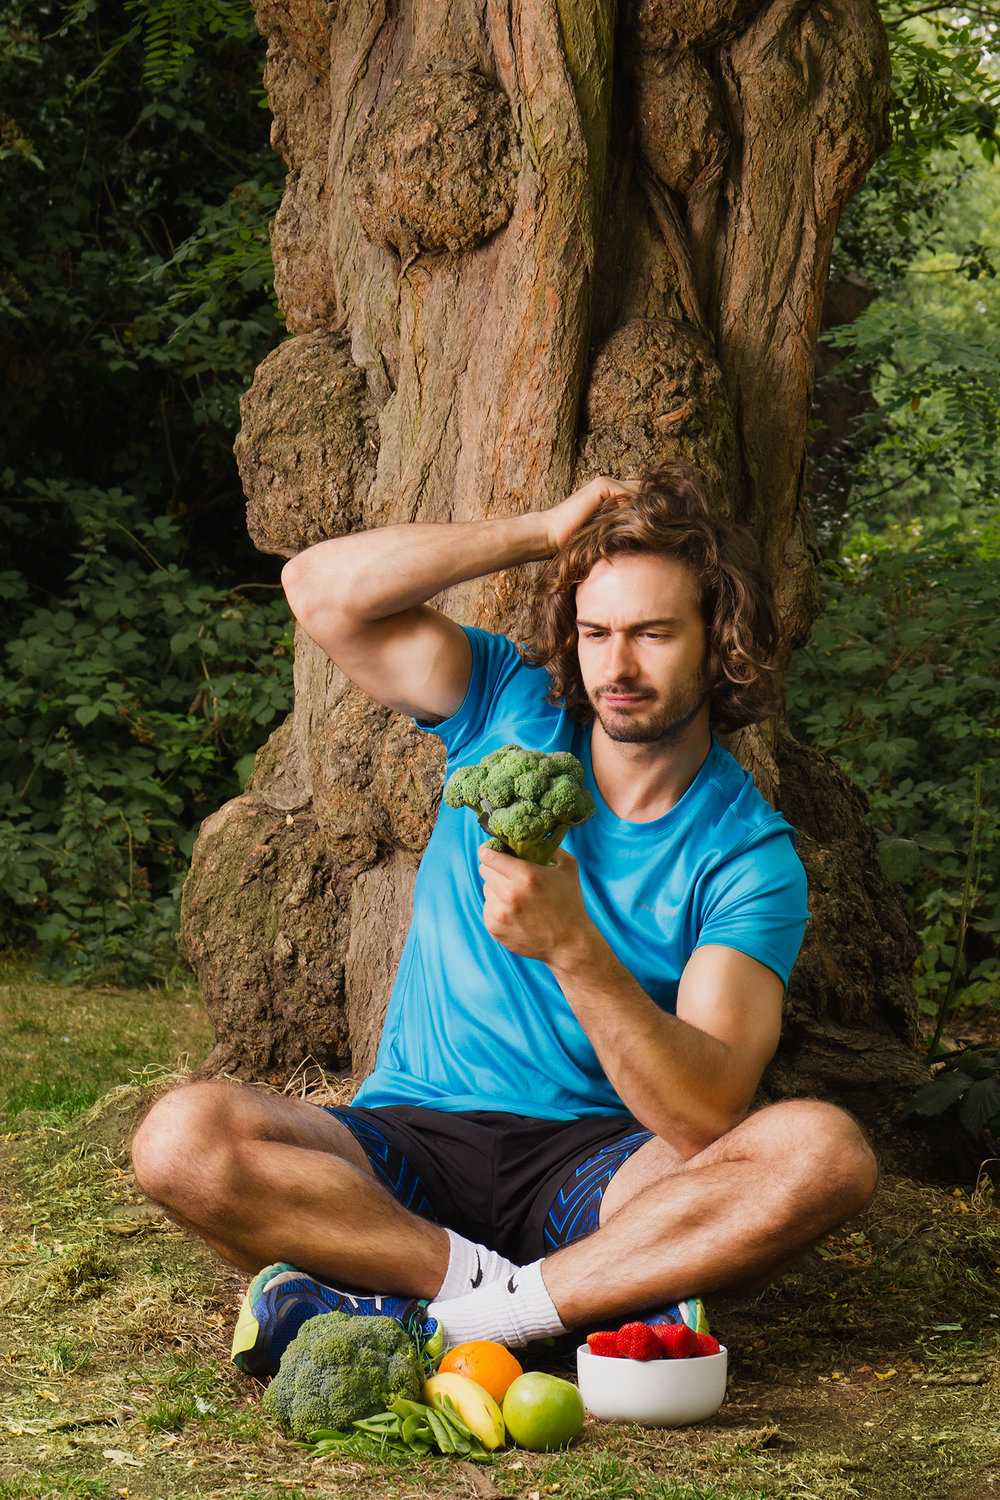 Joe Wicks by Chris Brock